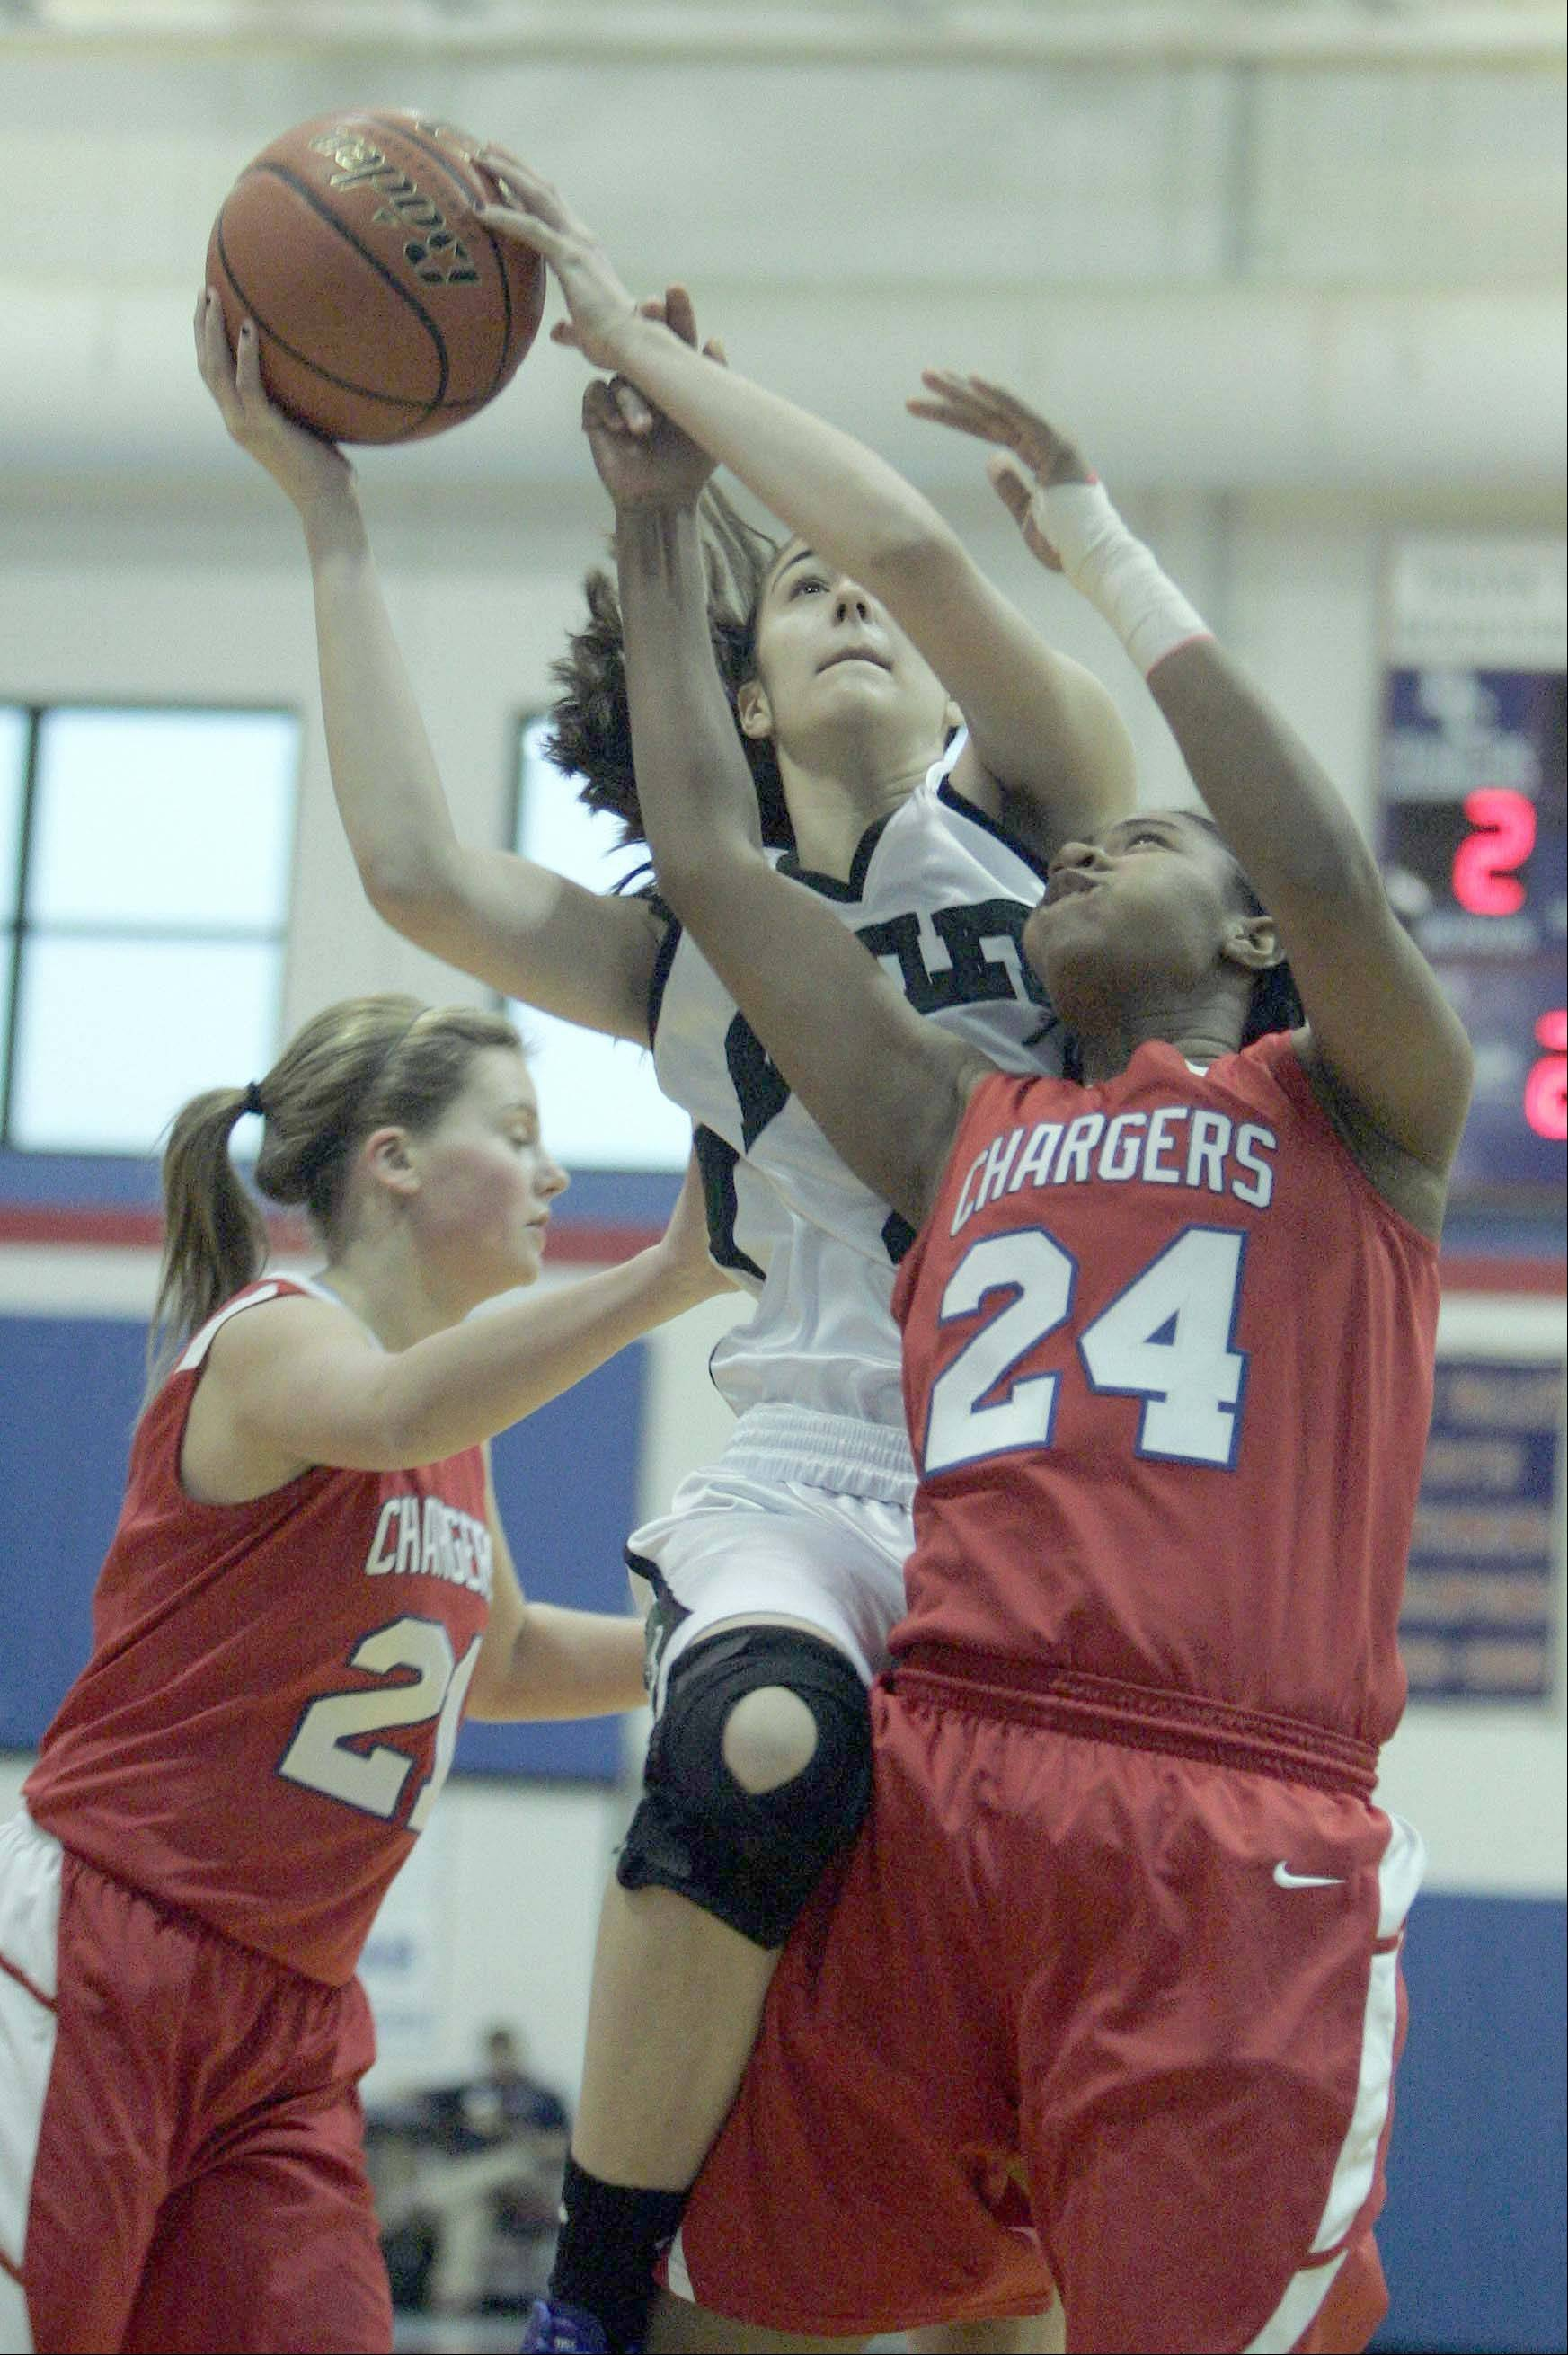 Images from Dundee-Crown vs Bartlett during the Dundee-Crown 30th Annual Charger Classic girls basketball tournament Thursday December 27, 2012 at the Carpentersville School.